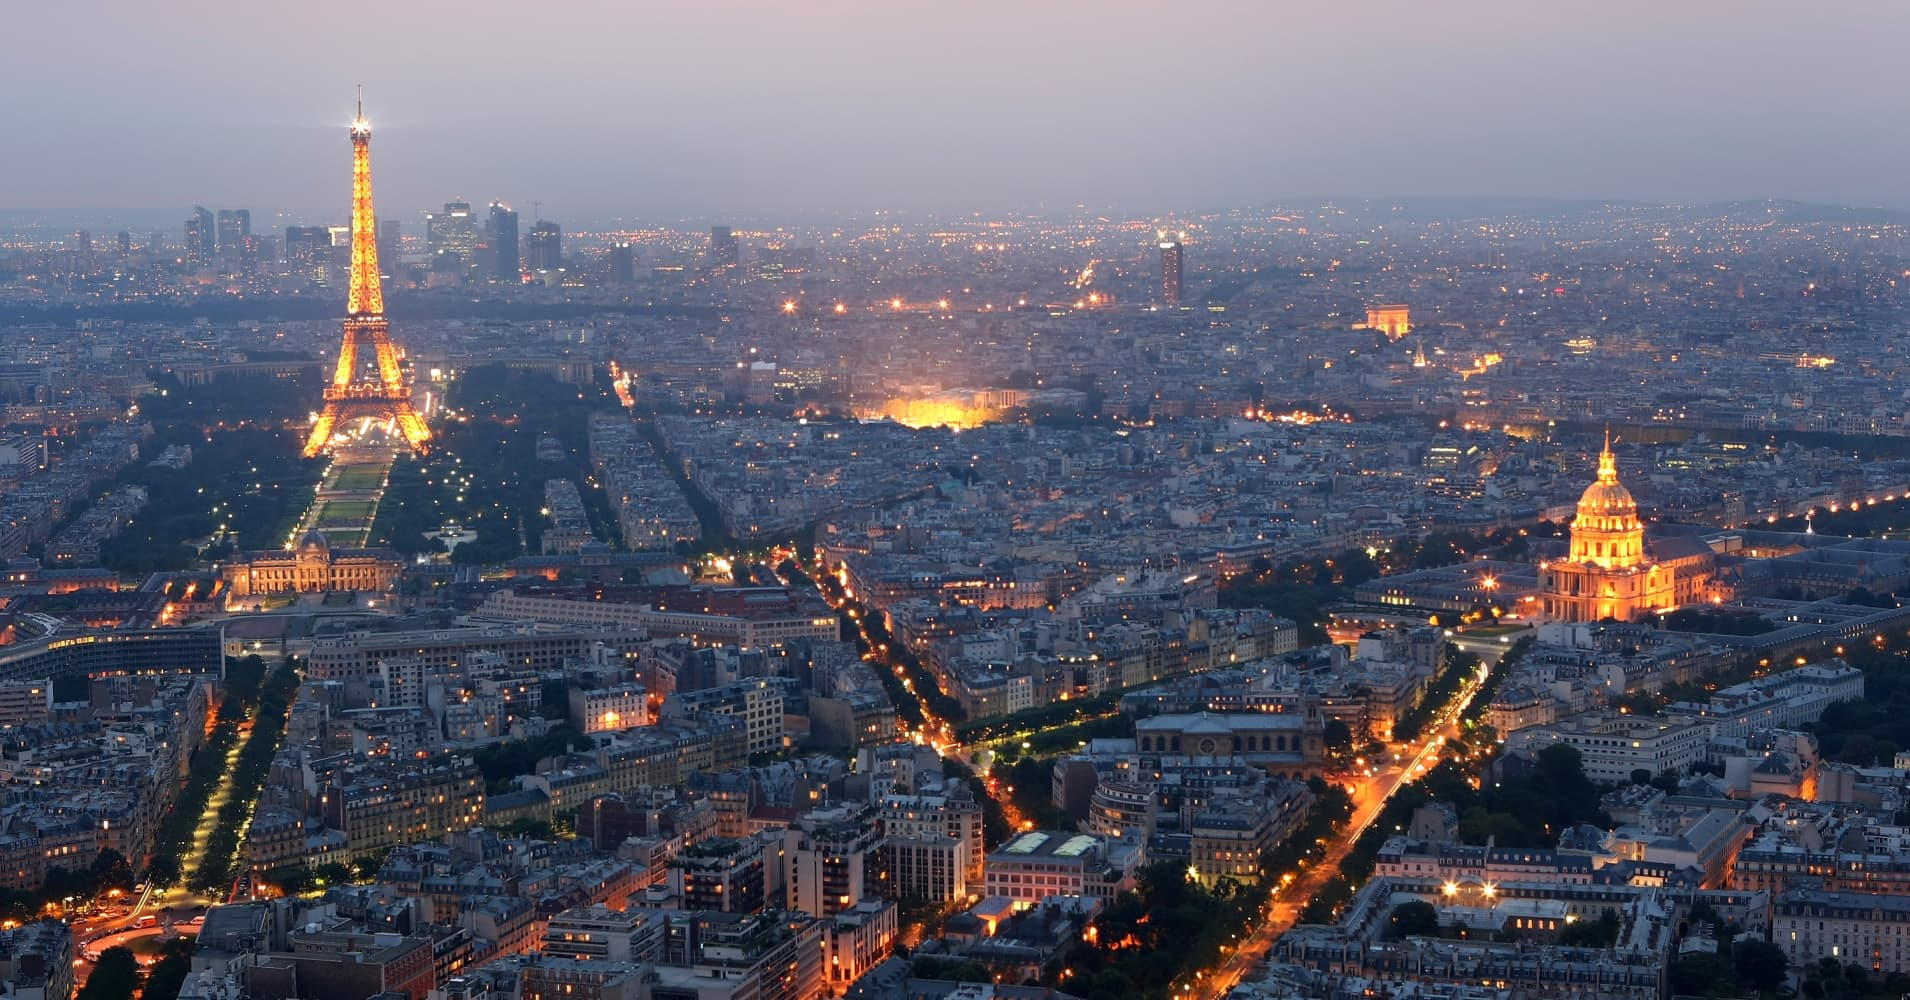 General view of Paris at dusk with the Eiffel Tower and the Hotel des Invalides prominent